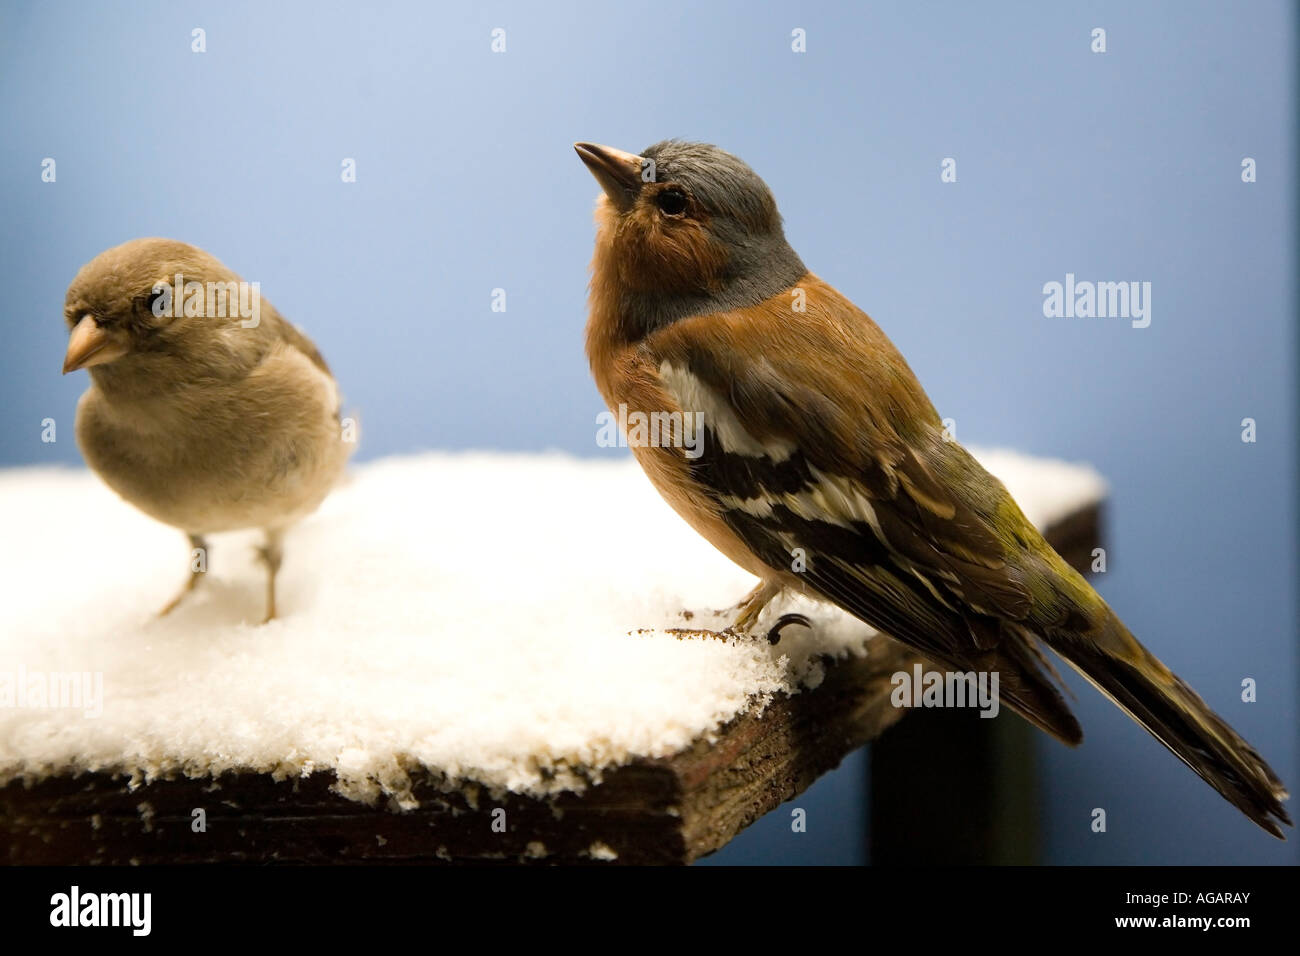 Male and female Chaffinches - Stock Image